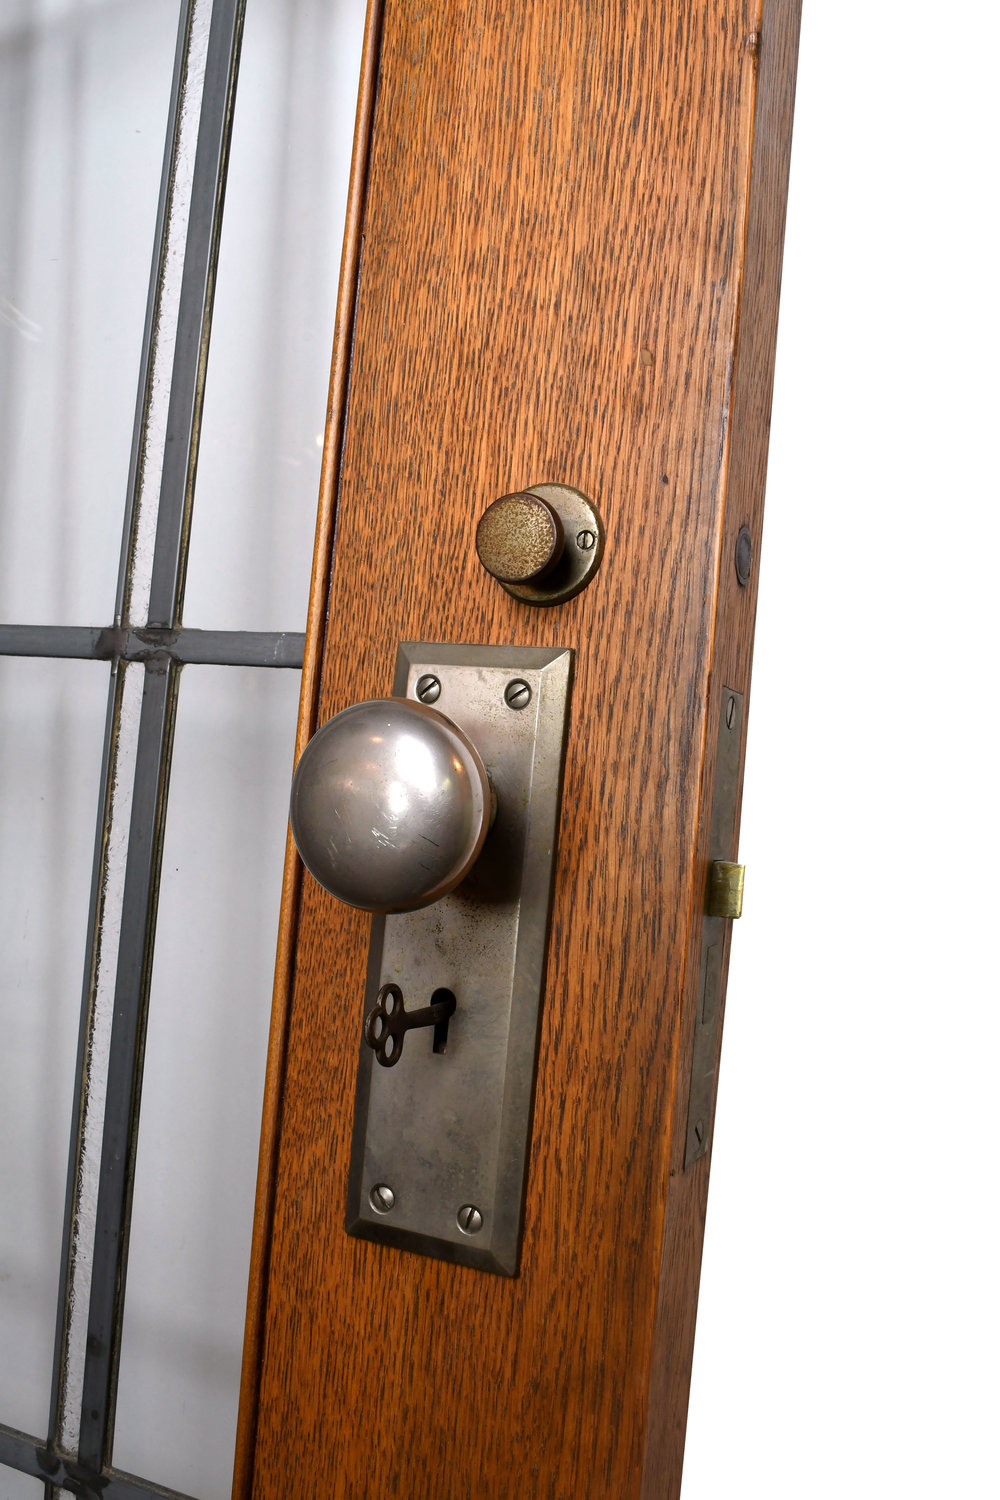 47420-oak-lead-glass-door-hardware.jpg